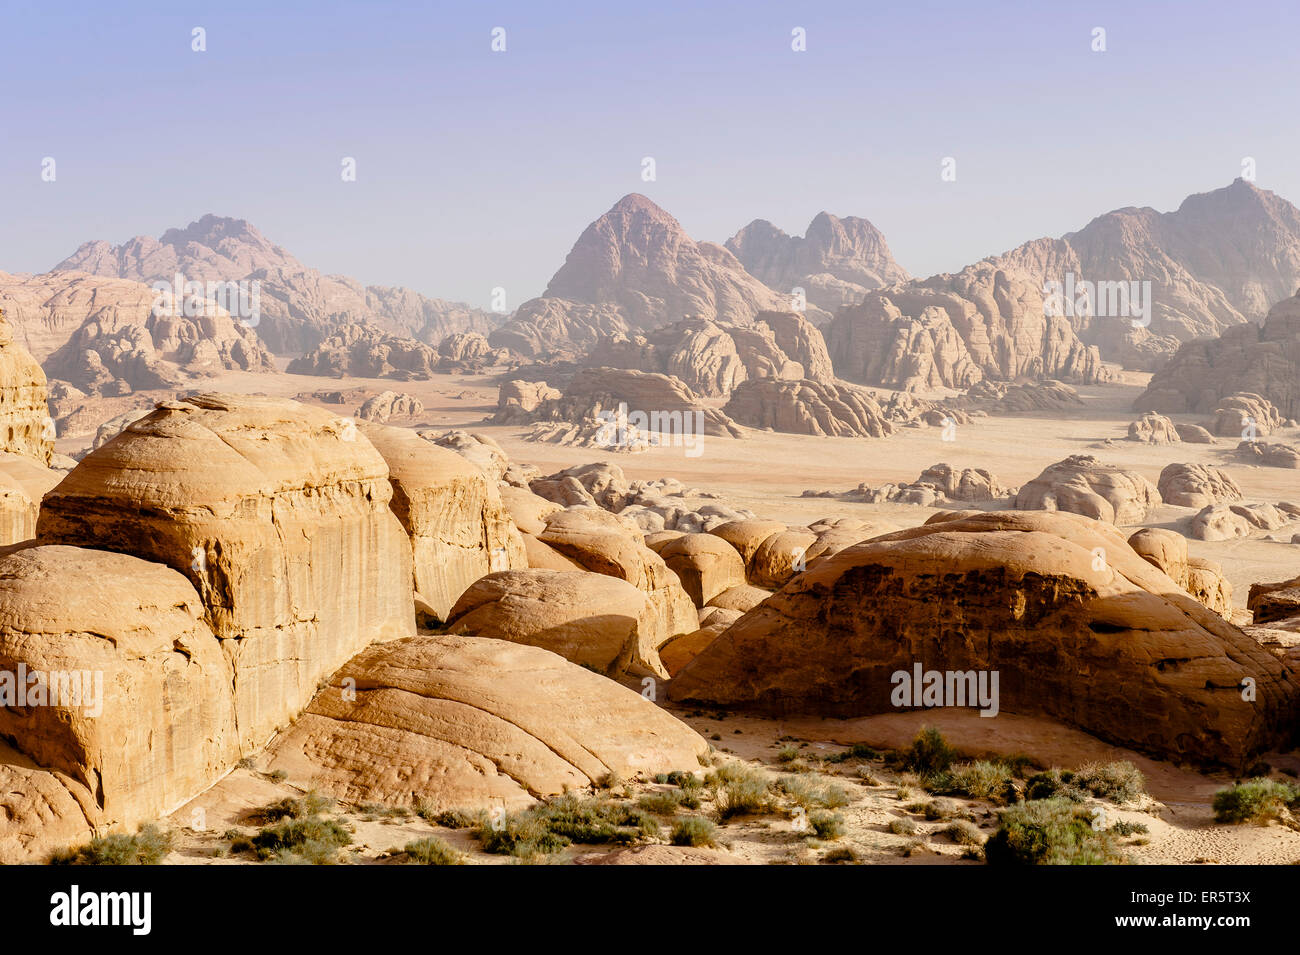 Desert landscape with rock formations, Wadi Rum, Jordan, Middle East - Stock Image